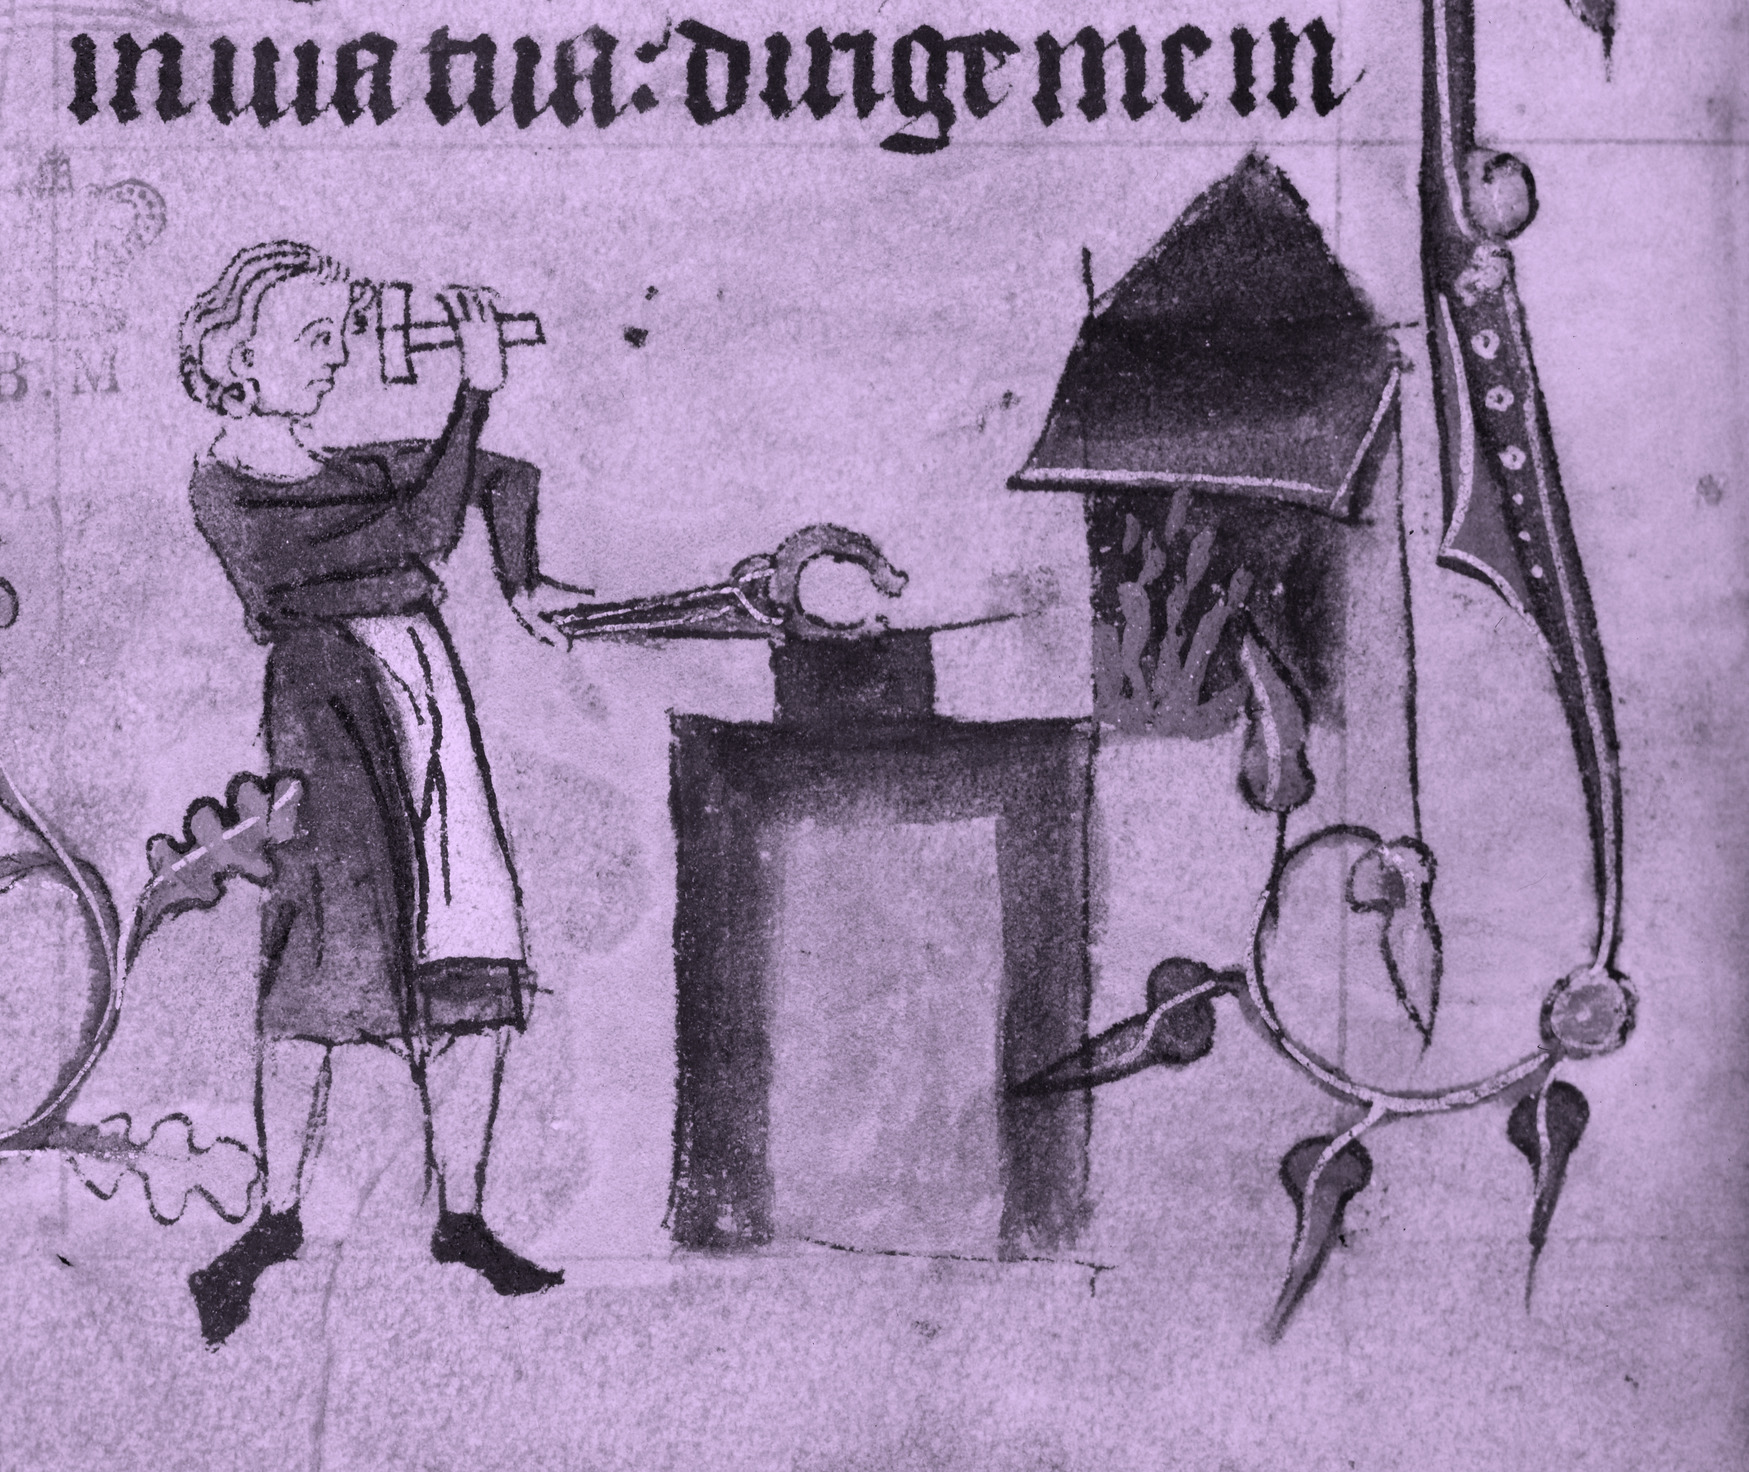 Book of Hours - caption: 'Marginal bas-de-page detail showing a farrier at work in front of his forge, striking a horse shoe, held by pincers on an anvil, with a hammer'